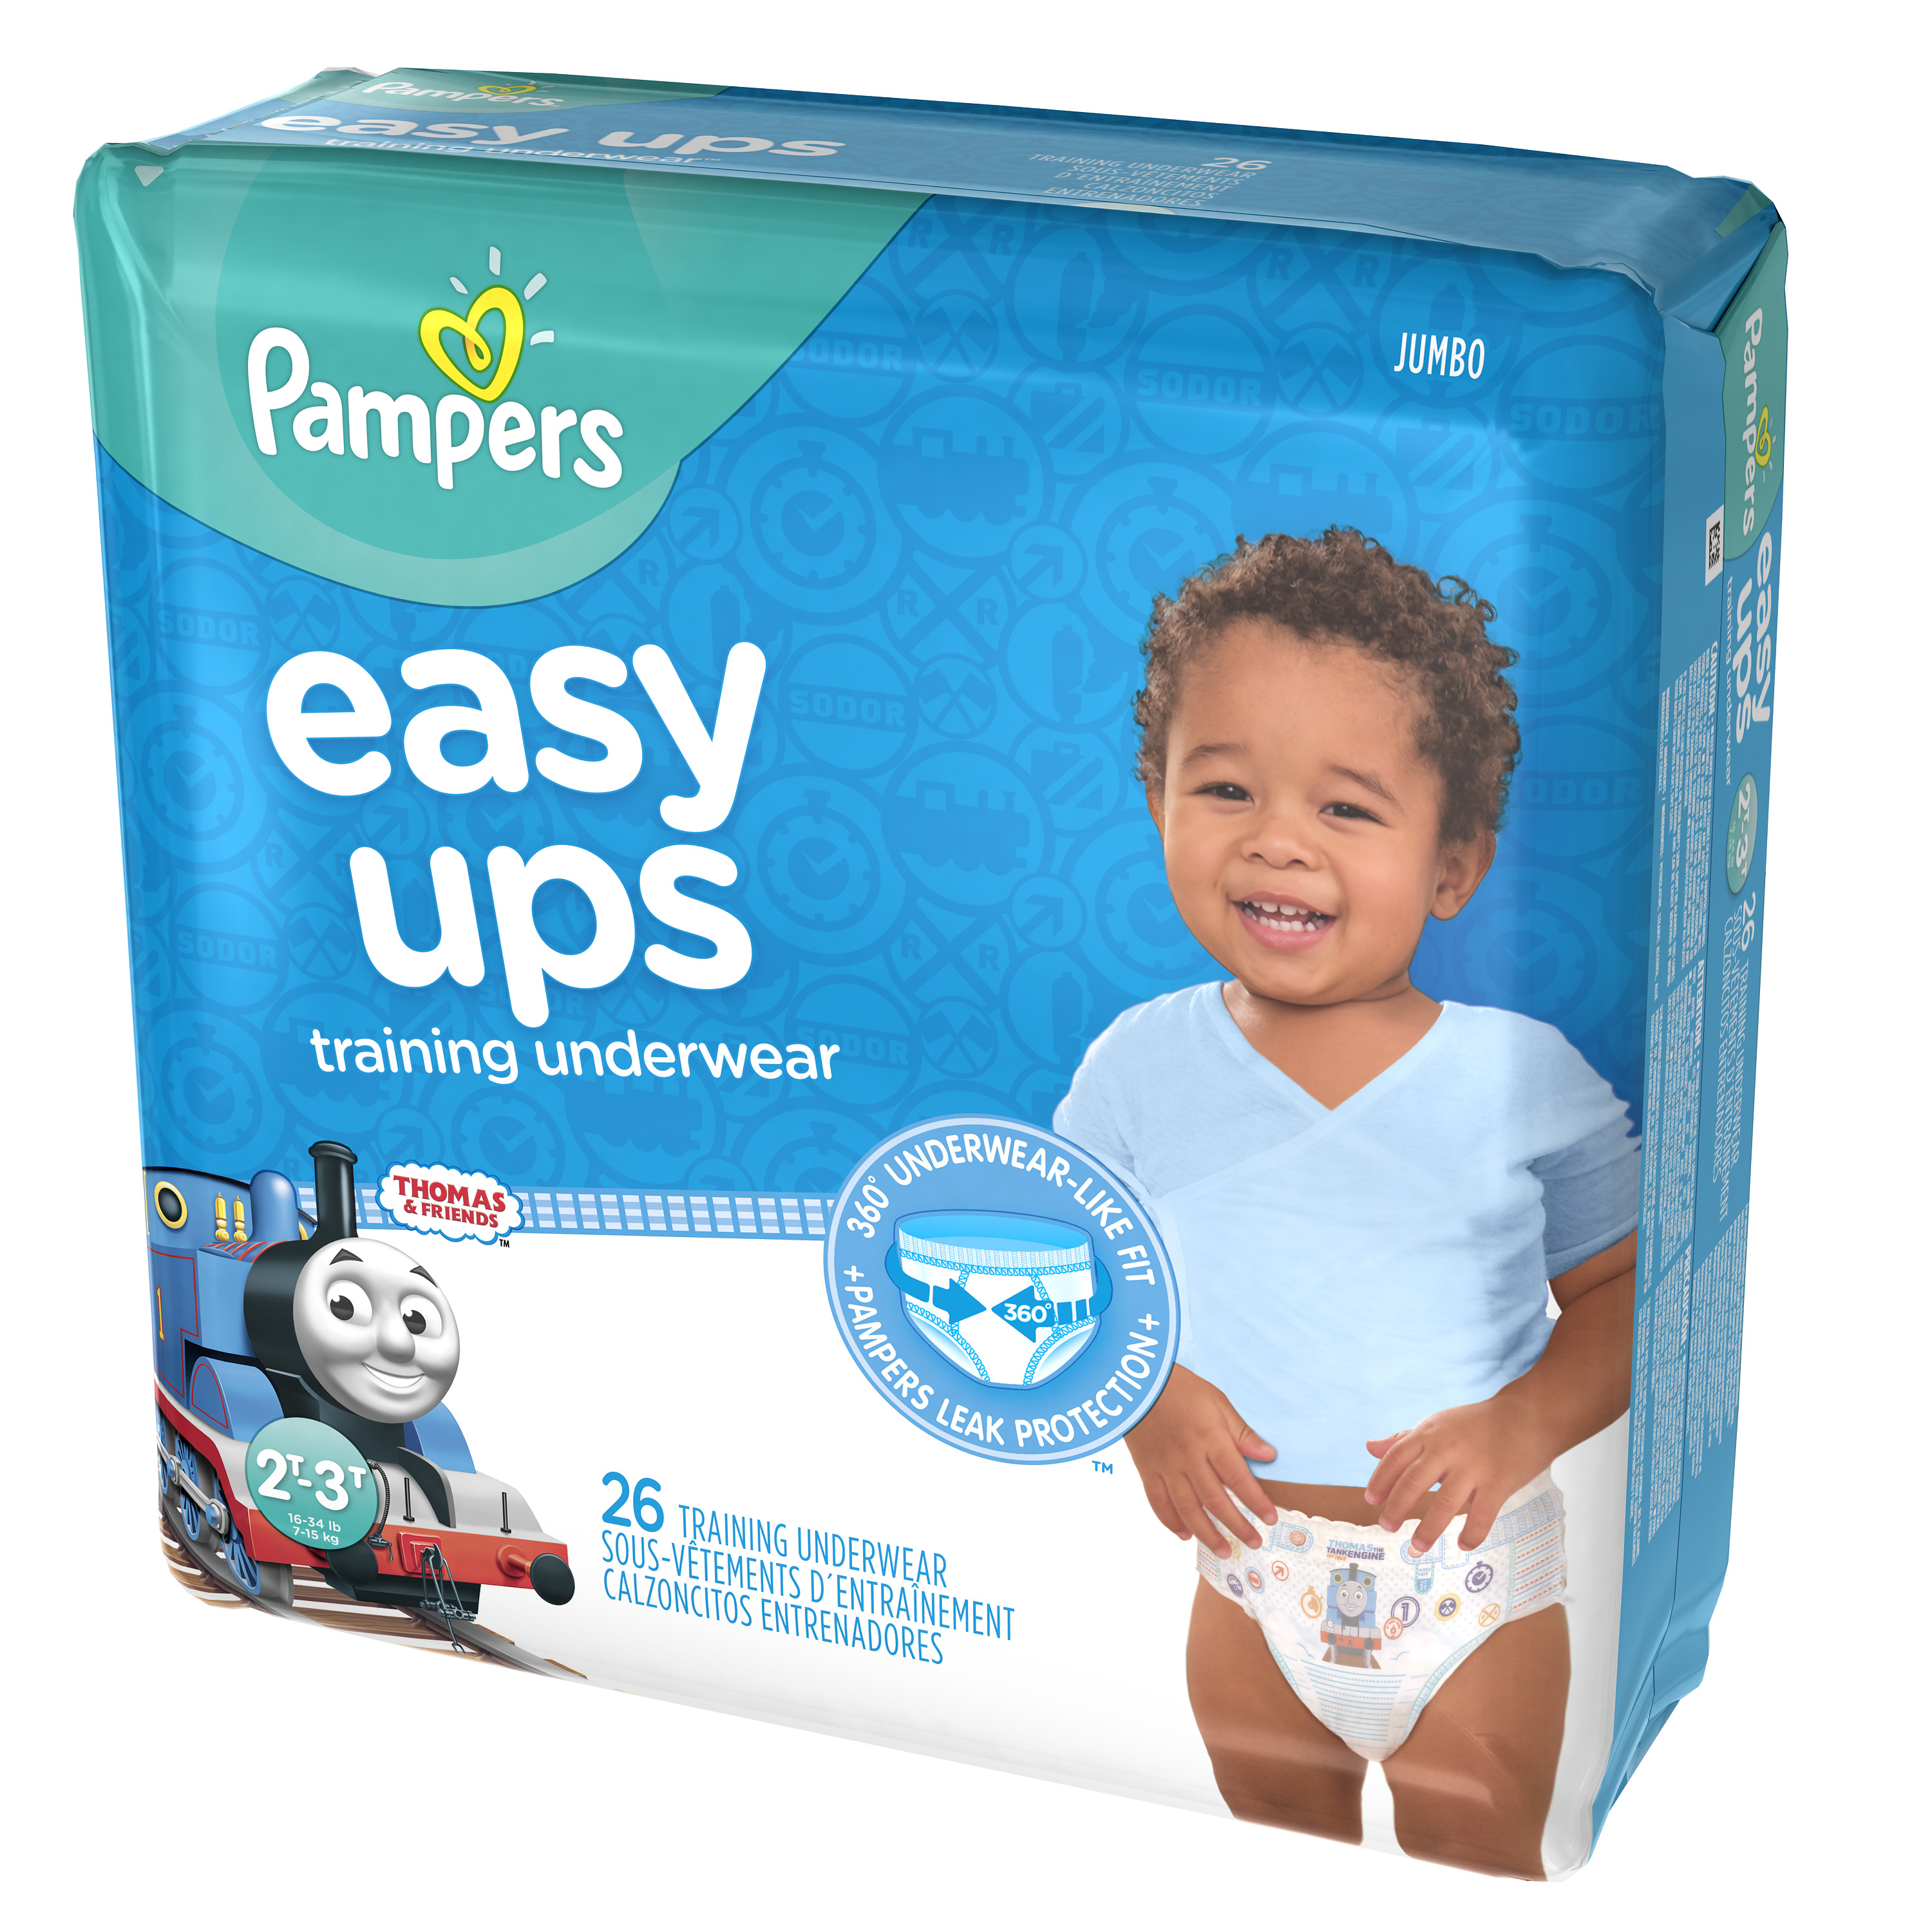 Pampers Easy Ups Training Underwear Boys Size 4 2T-3T 26 Count